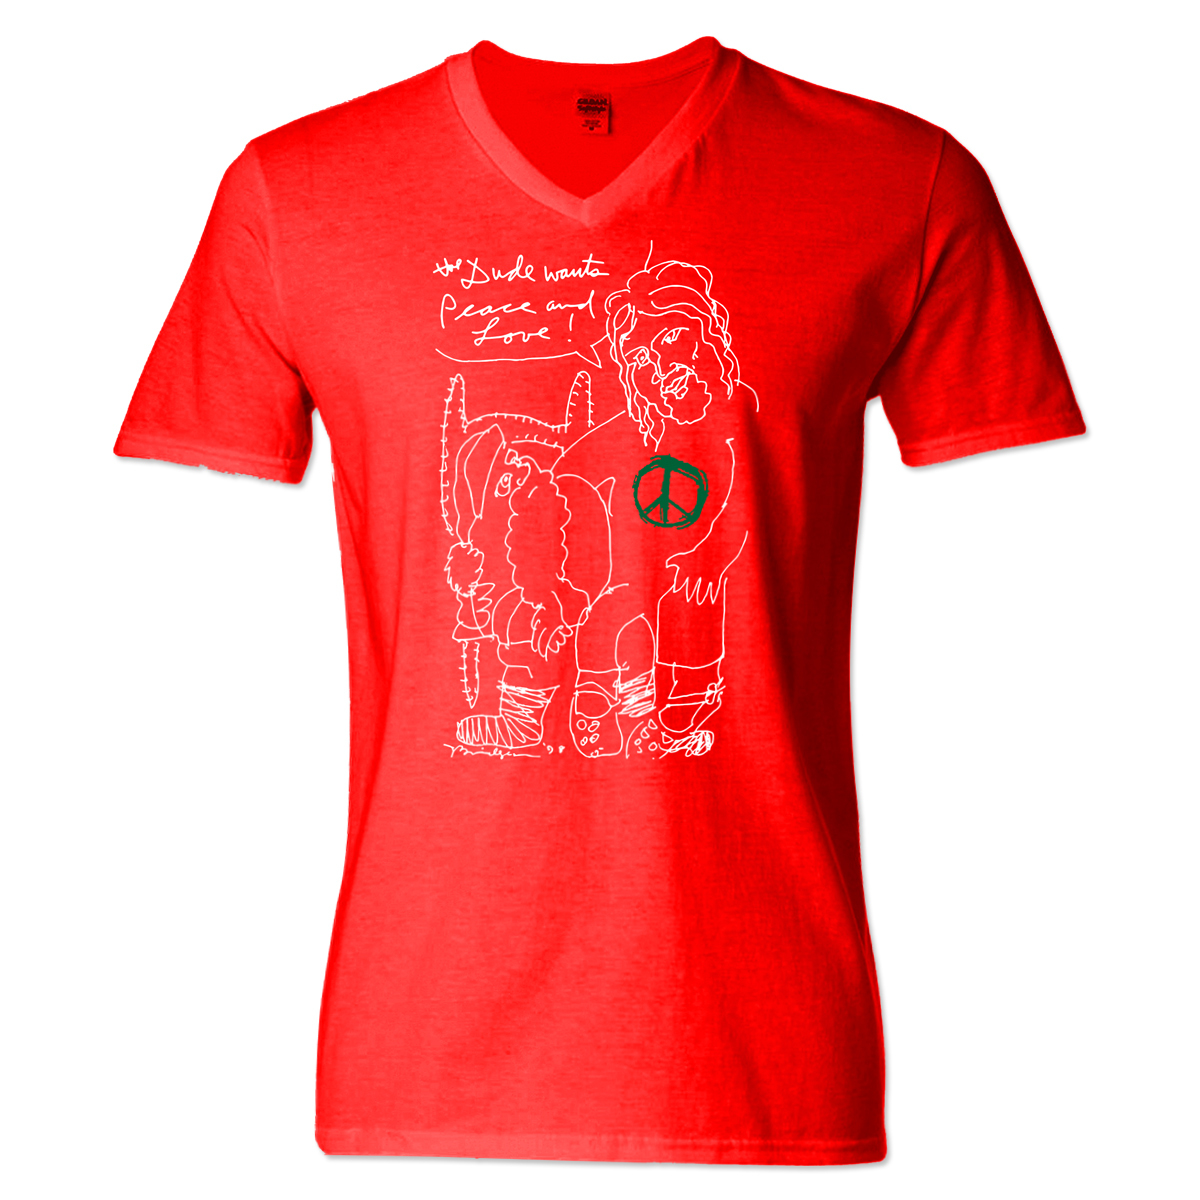 Jeff Bridges Christmas Red V-Neck T-shirt - Women's